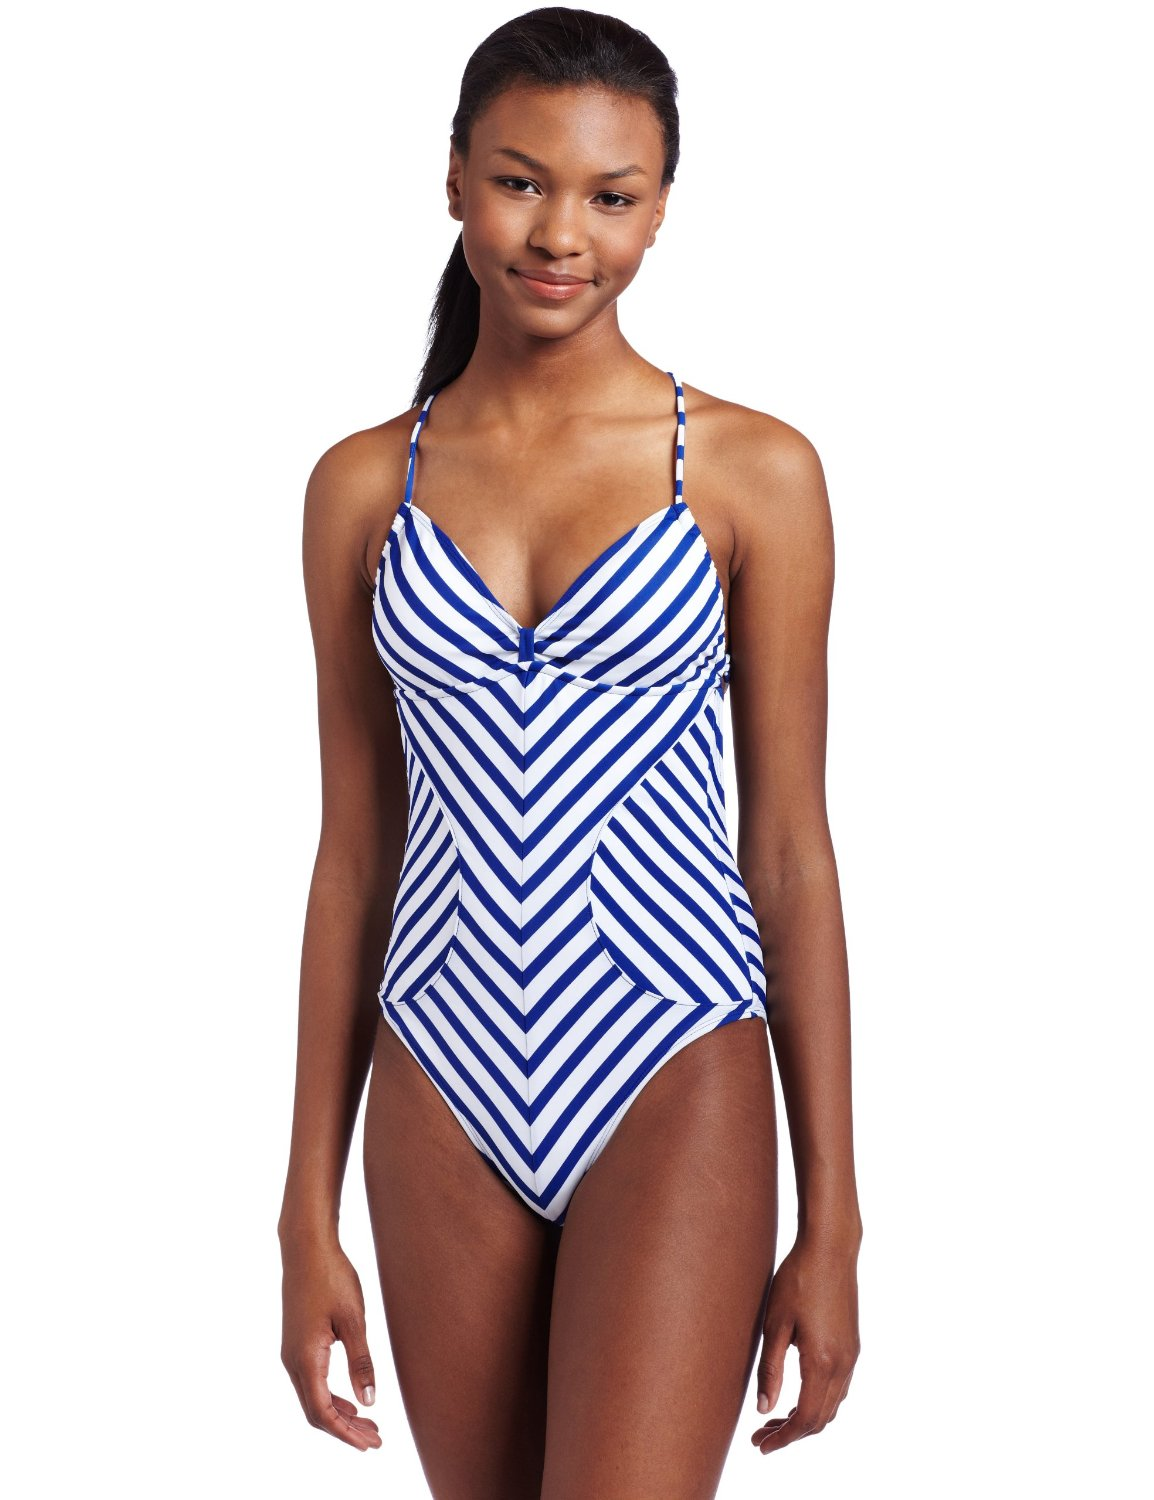 Our one piece swimwear features some of the season's trendiest styles - from floral one piece swimsuits to colorblock to ruffle and off the shoulder looks. We love to double our one piece as a body suit by pairing bathing suits with jeans or shorts.